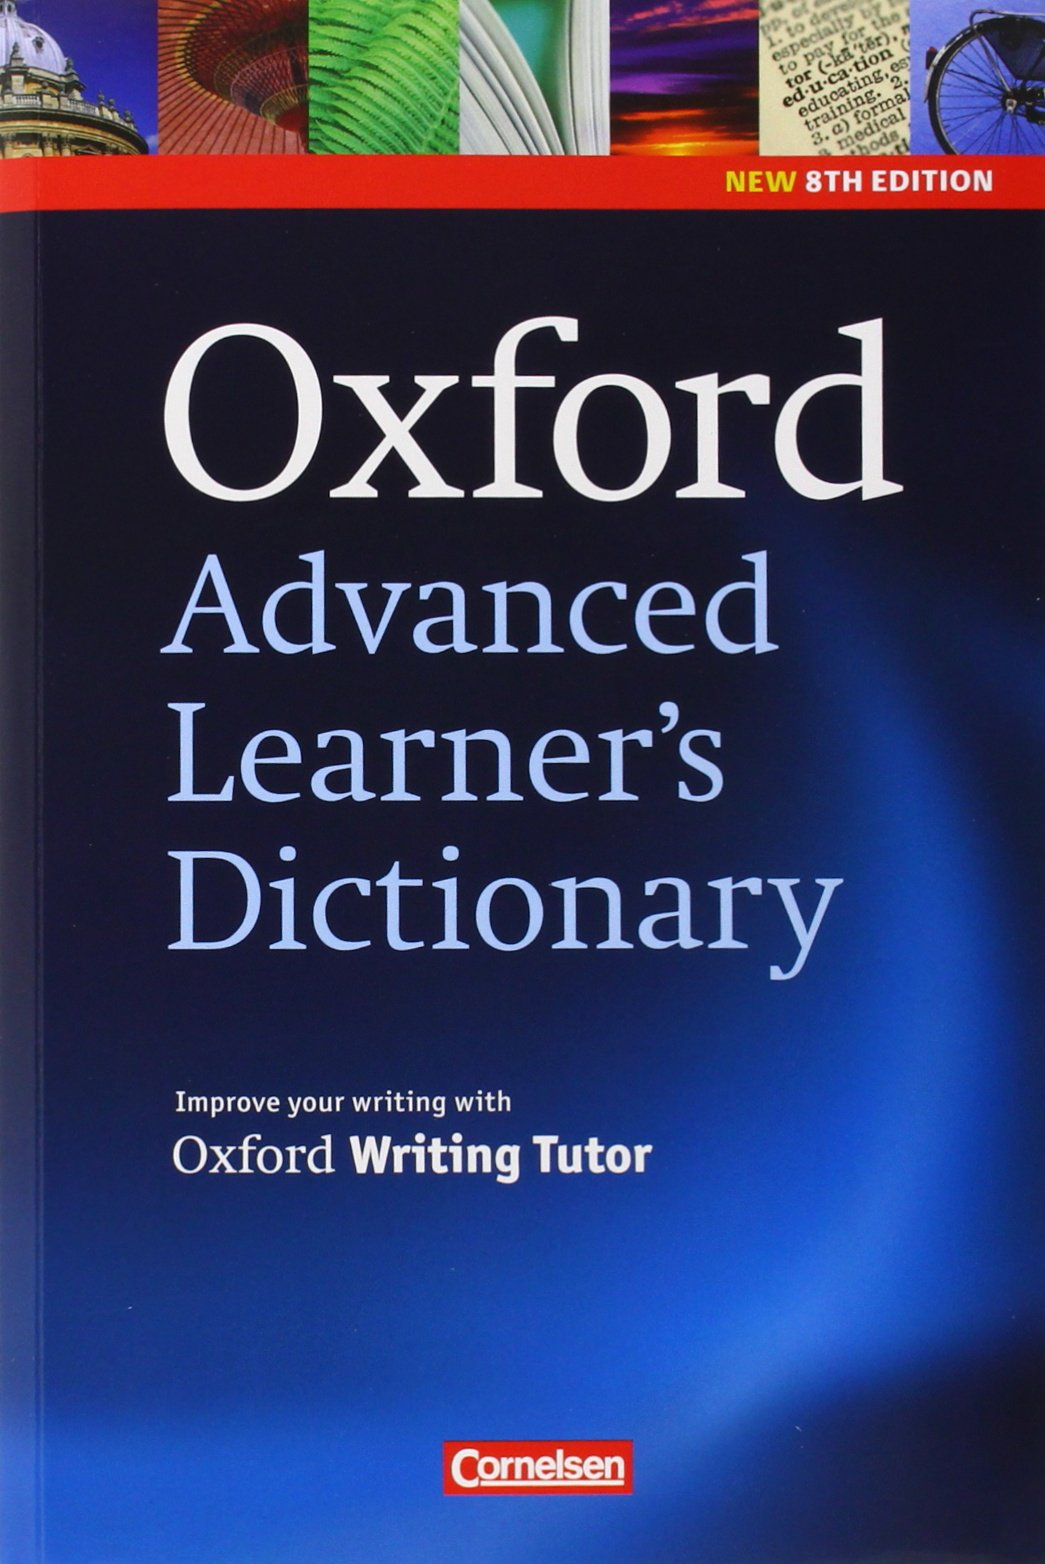 Oxford Advanced Learner's Dictionary - 8th Edition: B2-C2 - Wörterbuch: Kartoniert